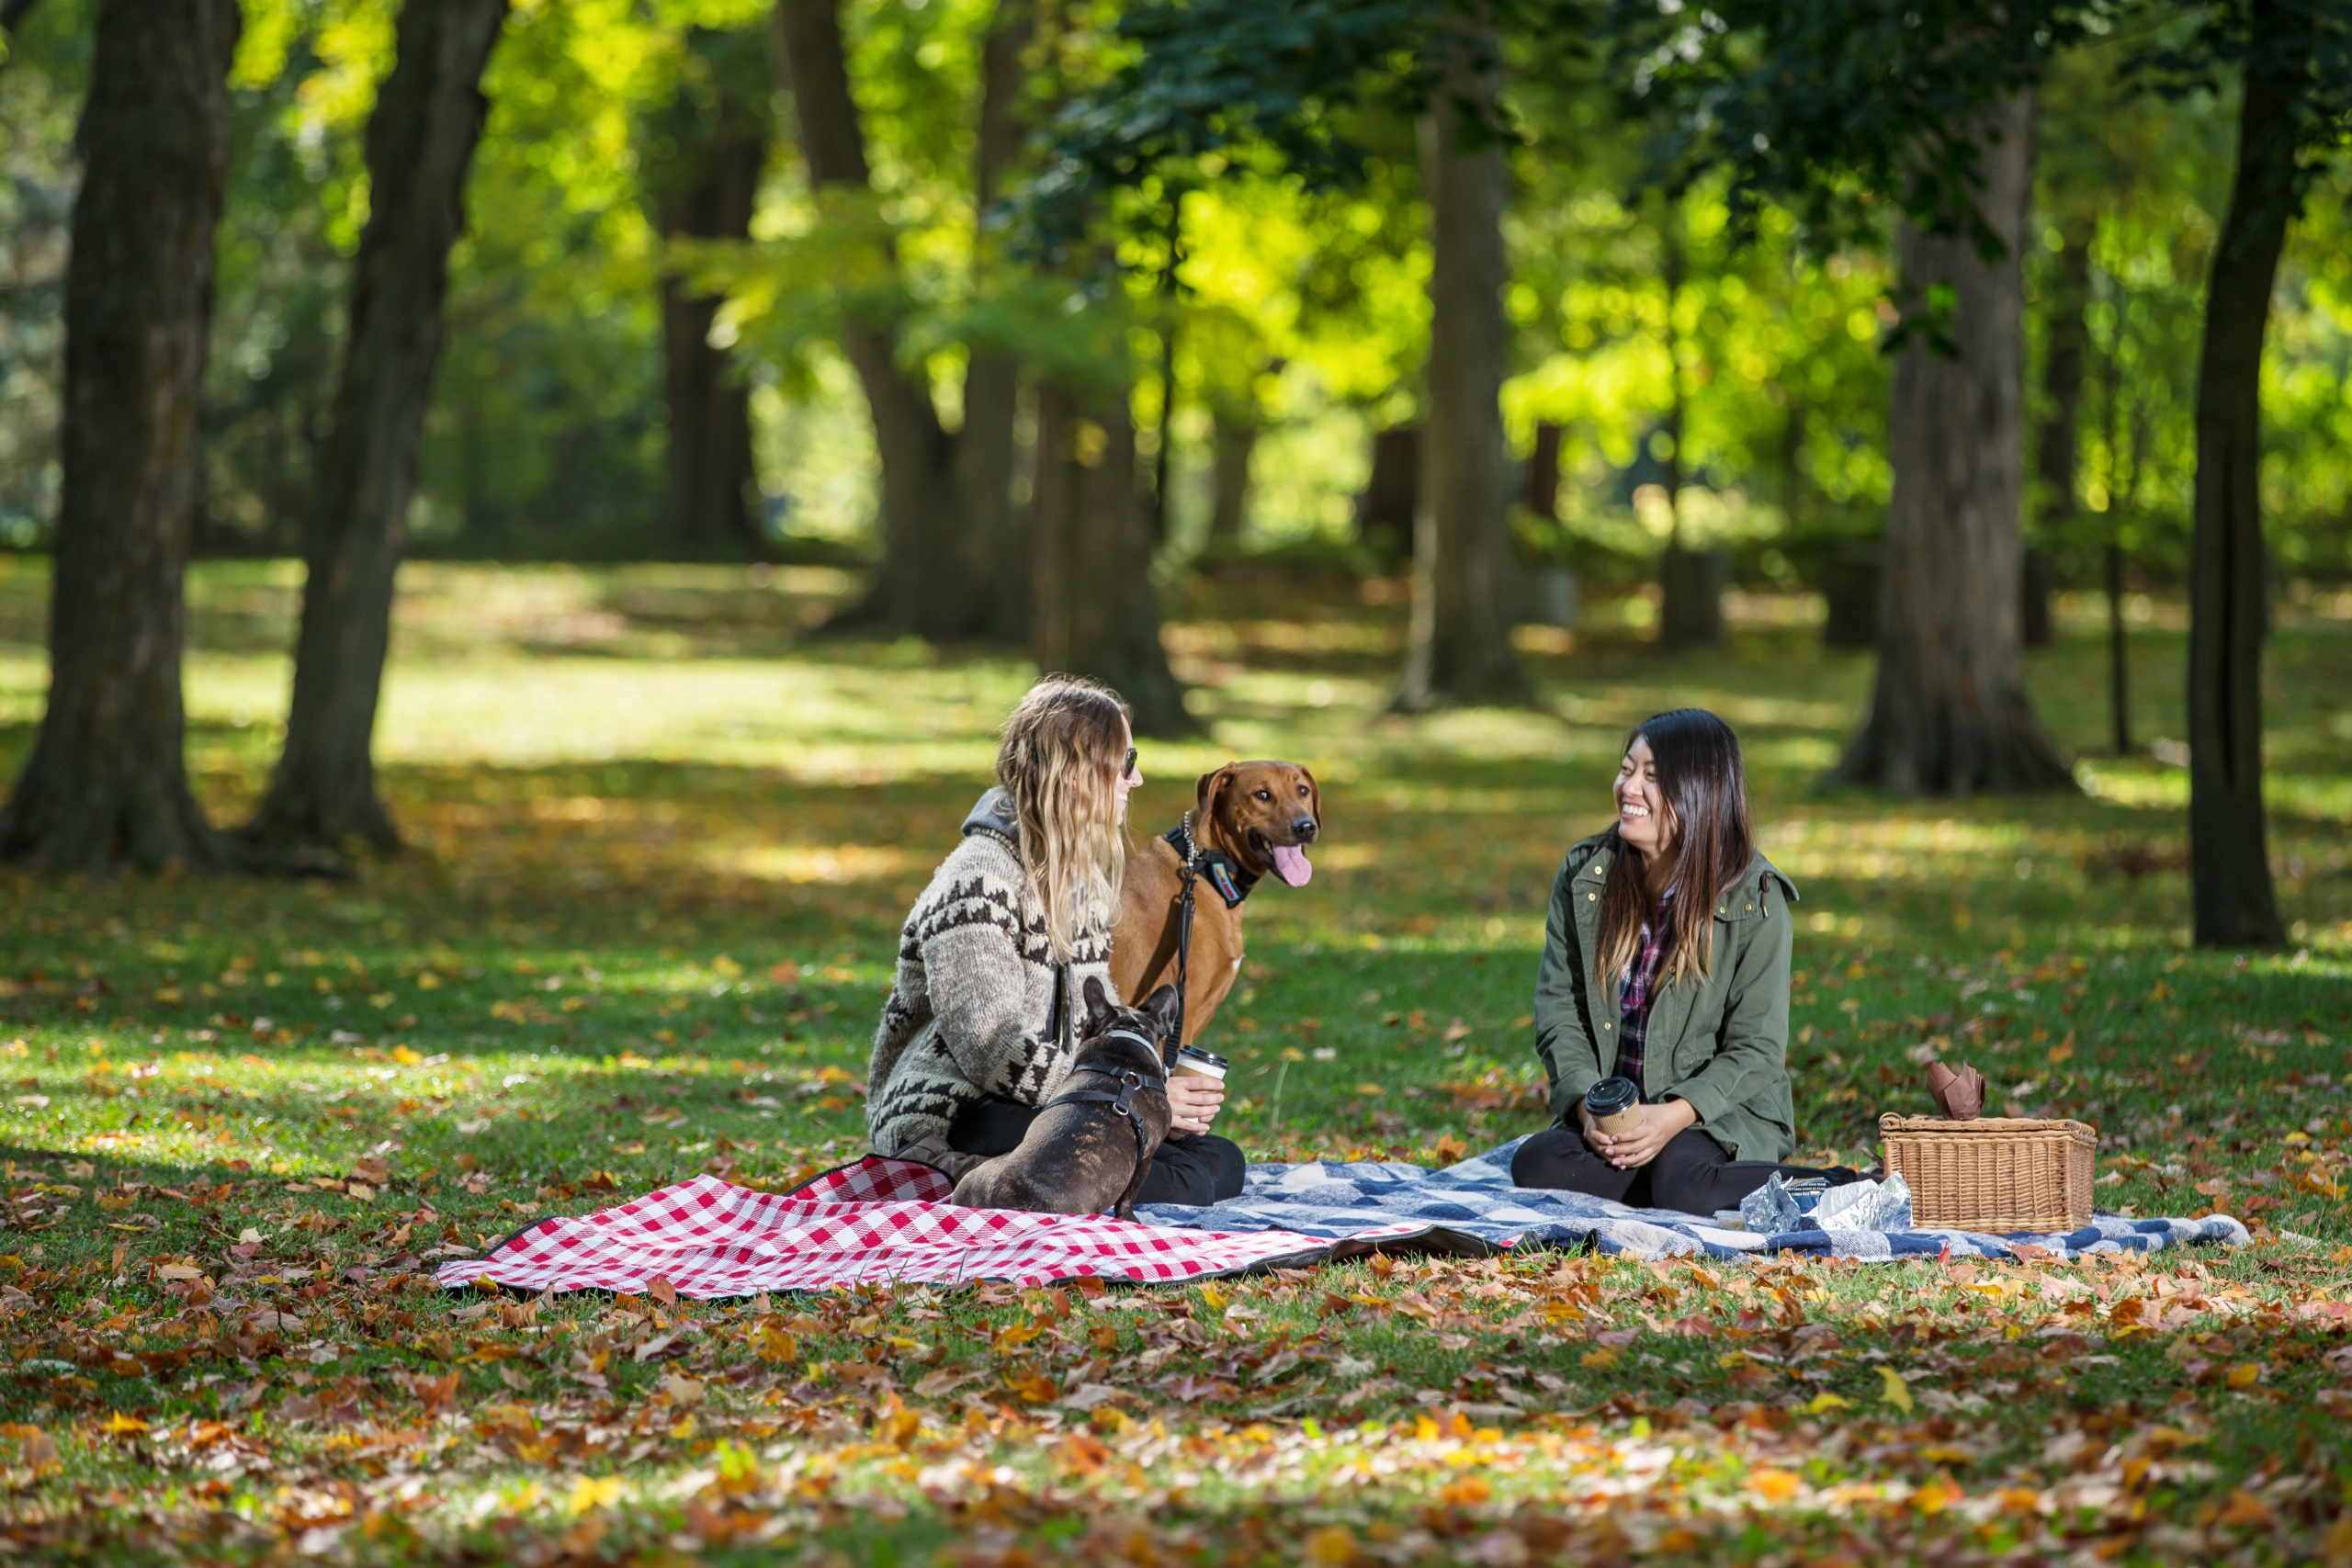 Two women and a dog picnicking at a Conservation Area